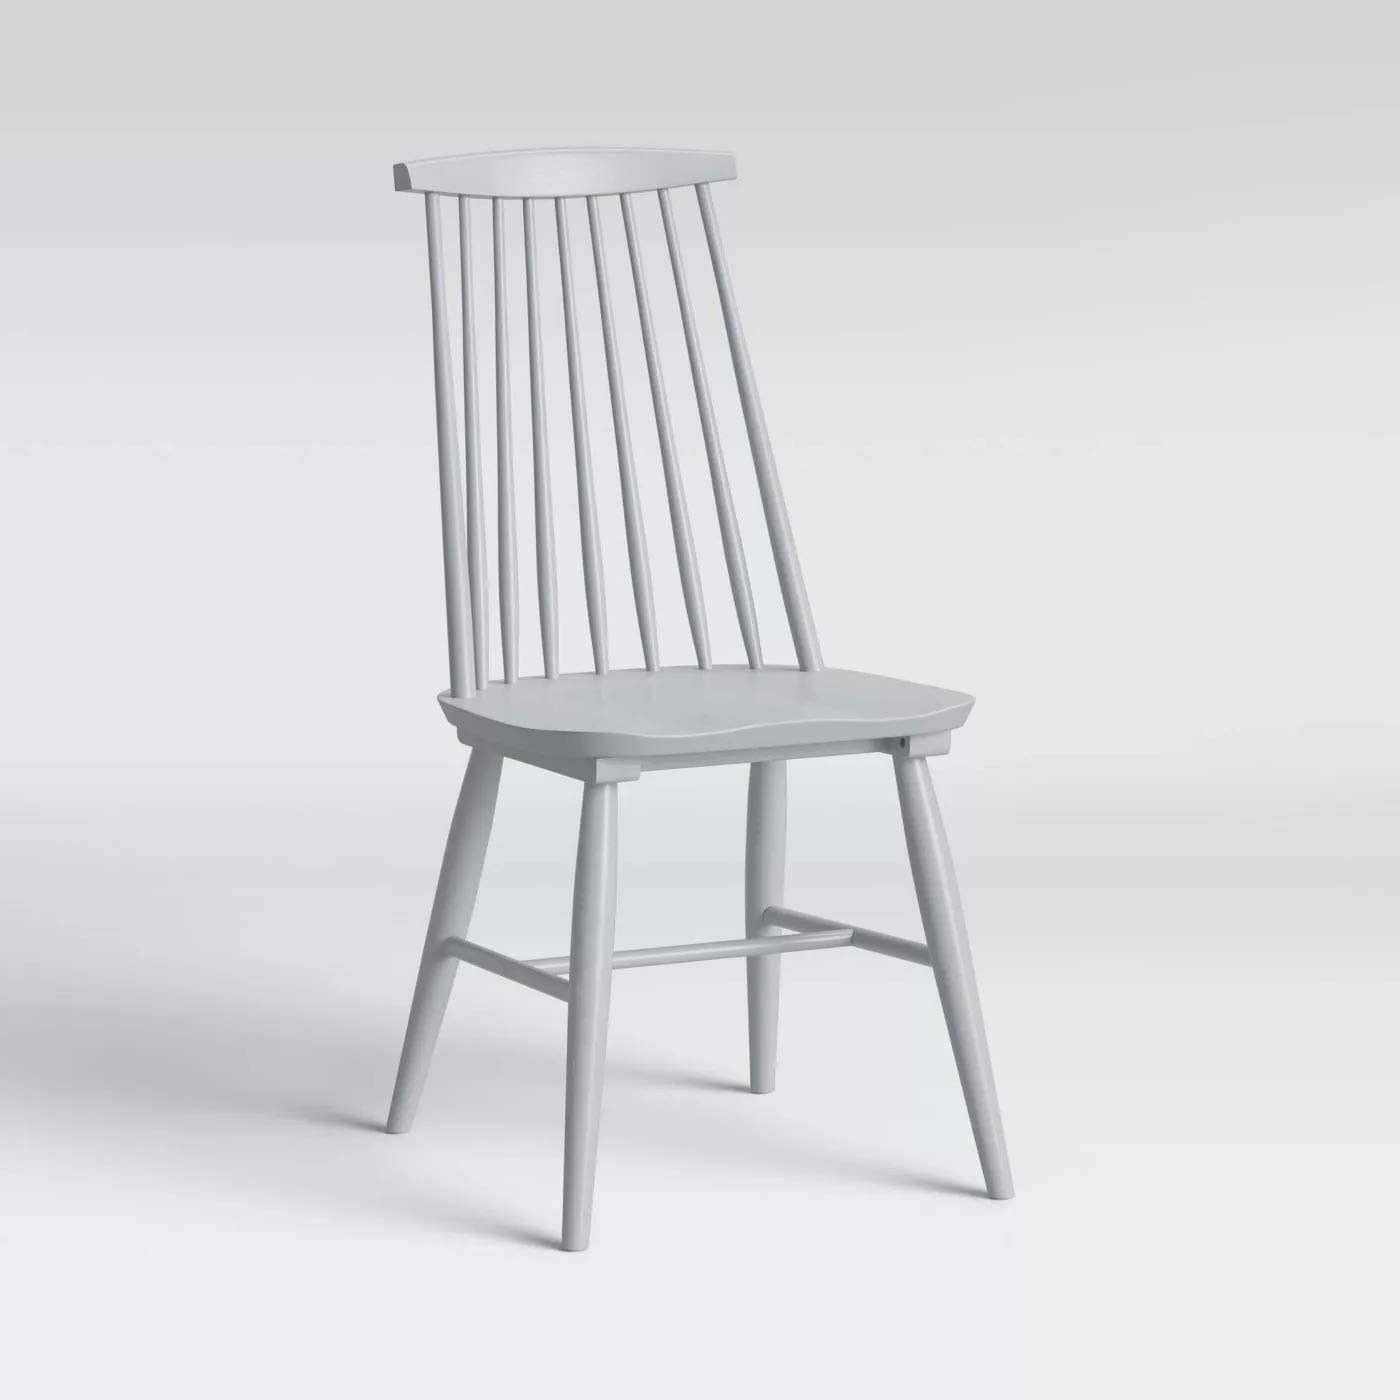 Amazon – Harwich High Back Windsor Dining Chair Intended For Most Up To Date Harwich Ceramic Garden Stools (View 29 of 30)